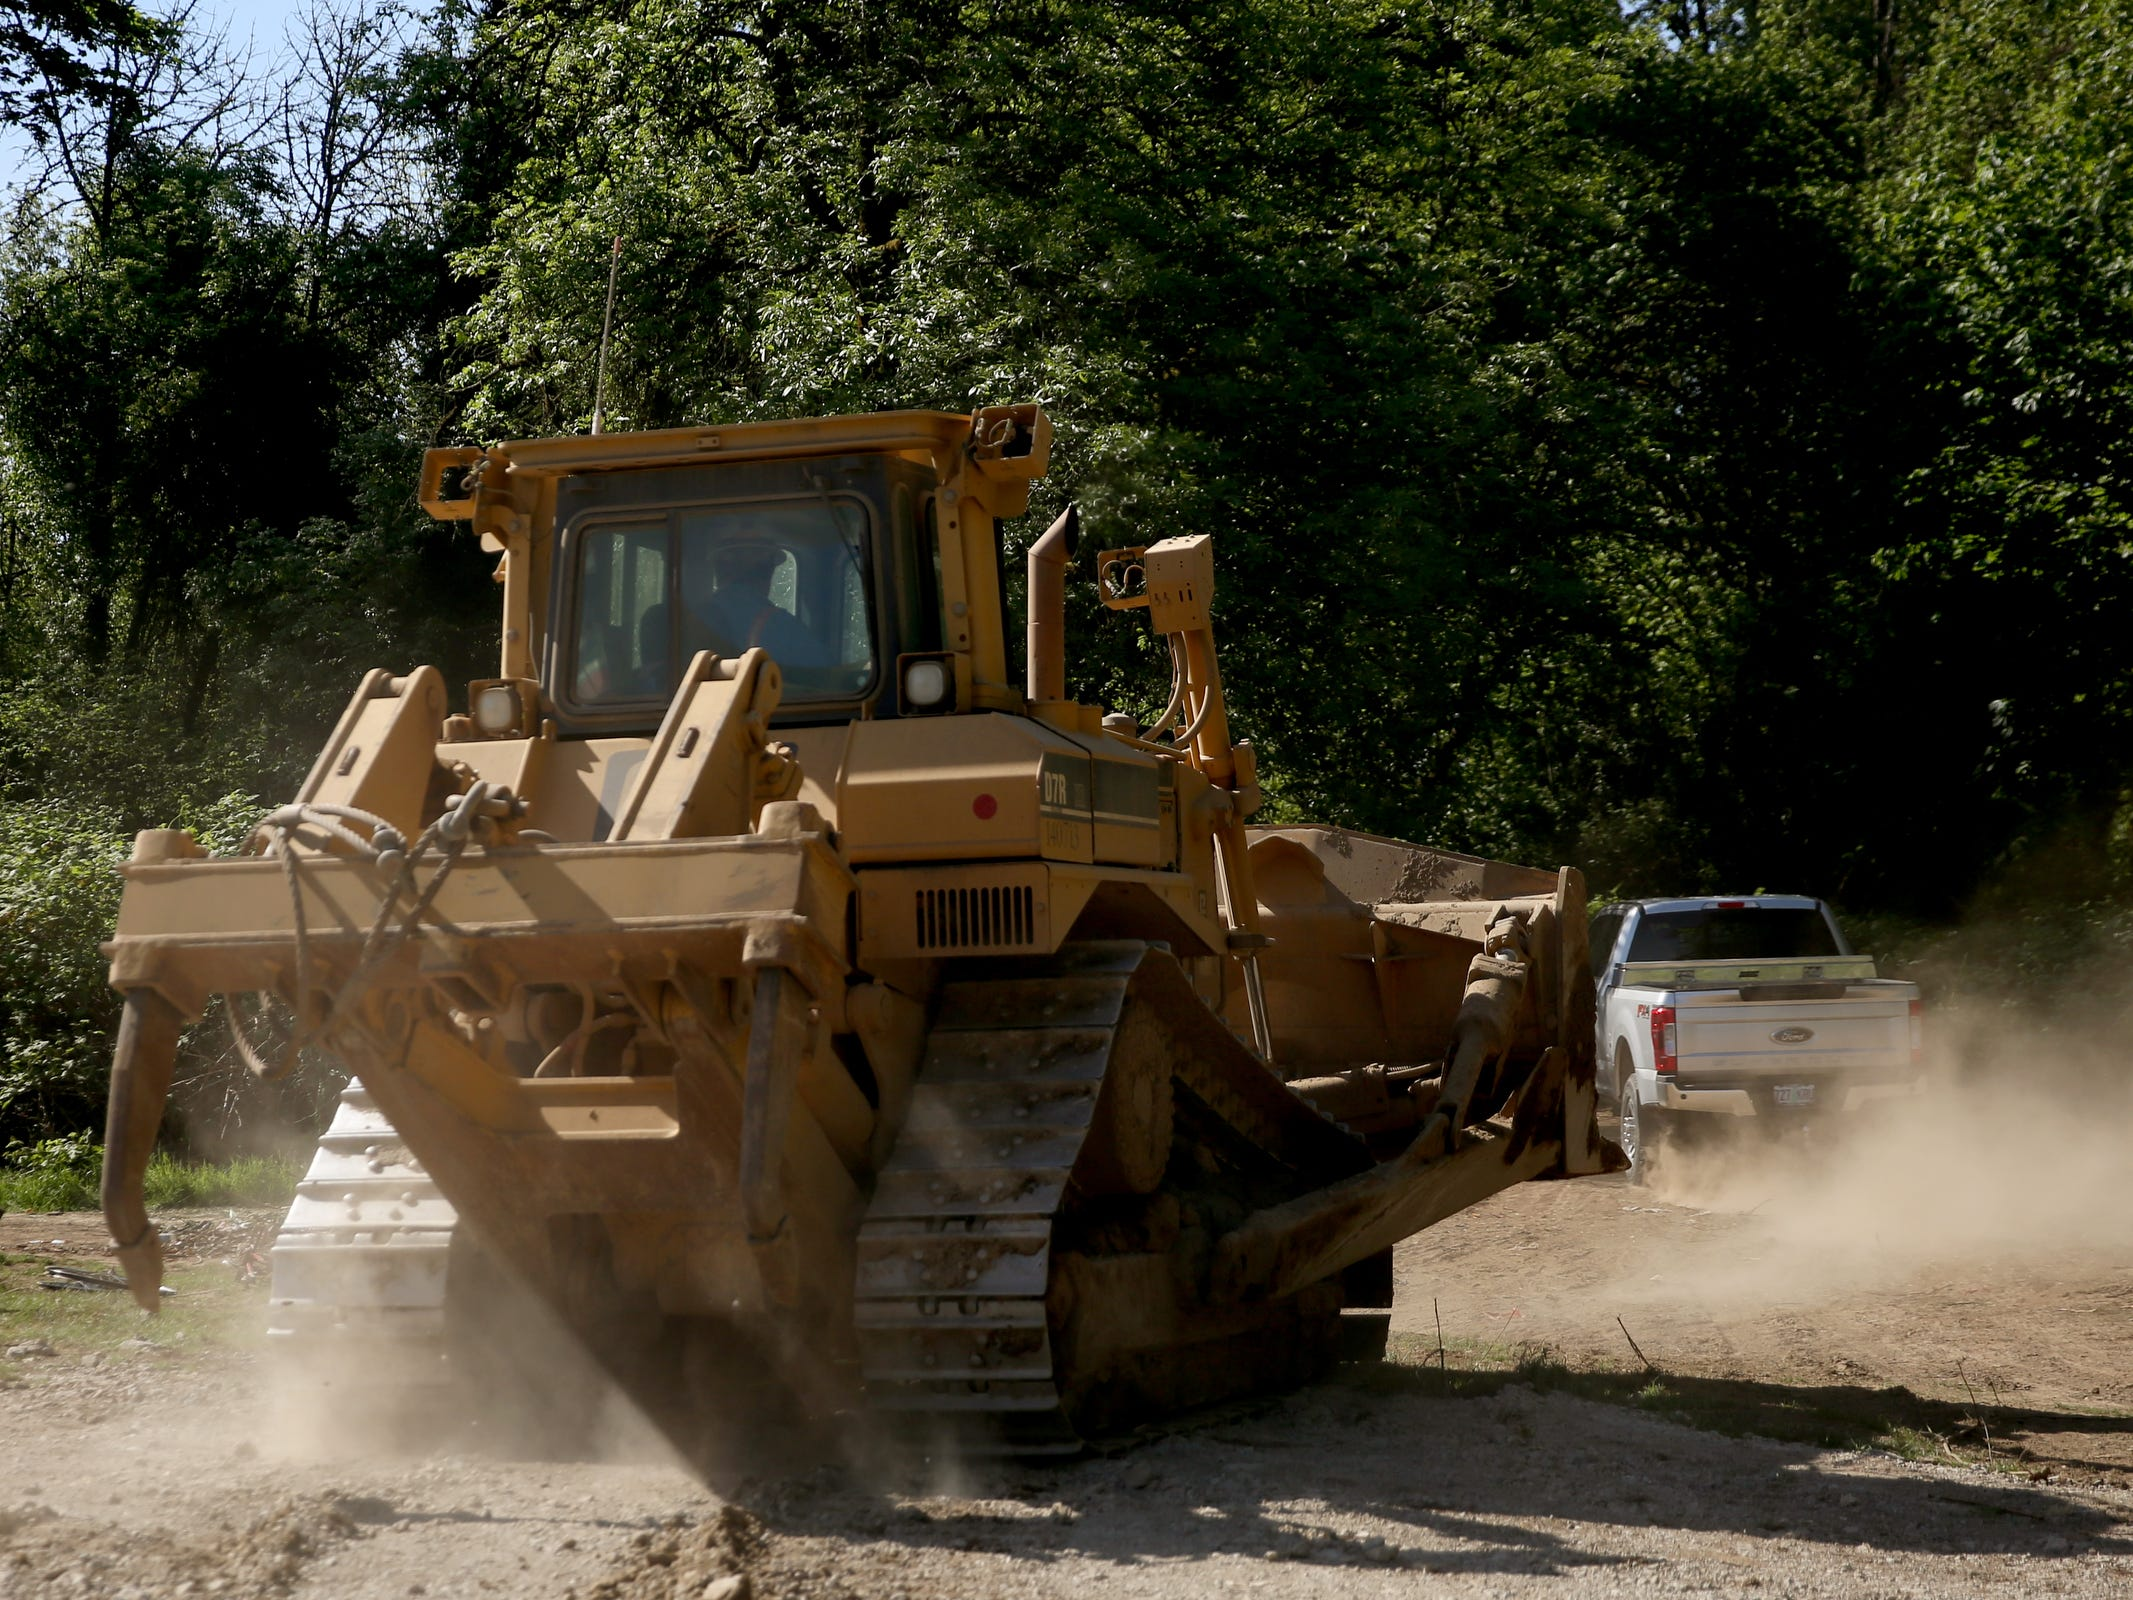 As a bulldozer drives away after several people stood in front of it to block it when it came into a privately-owned rock quarry with a homeless camp near Wallace Marine Park in West Salem on May 7, 2019. Signs were posted throughout the camp recently stating personal property must be removed or it will be taken by the landowner and its designated agent starting May 7. An eviction can't be enforced until a court approves it.